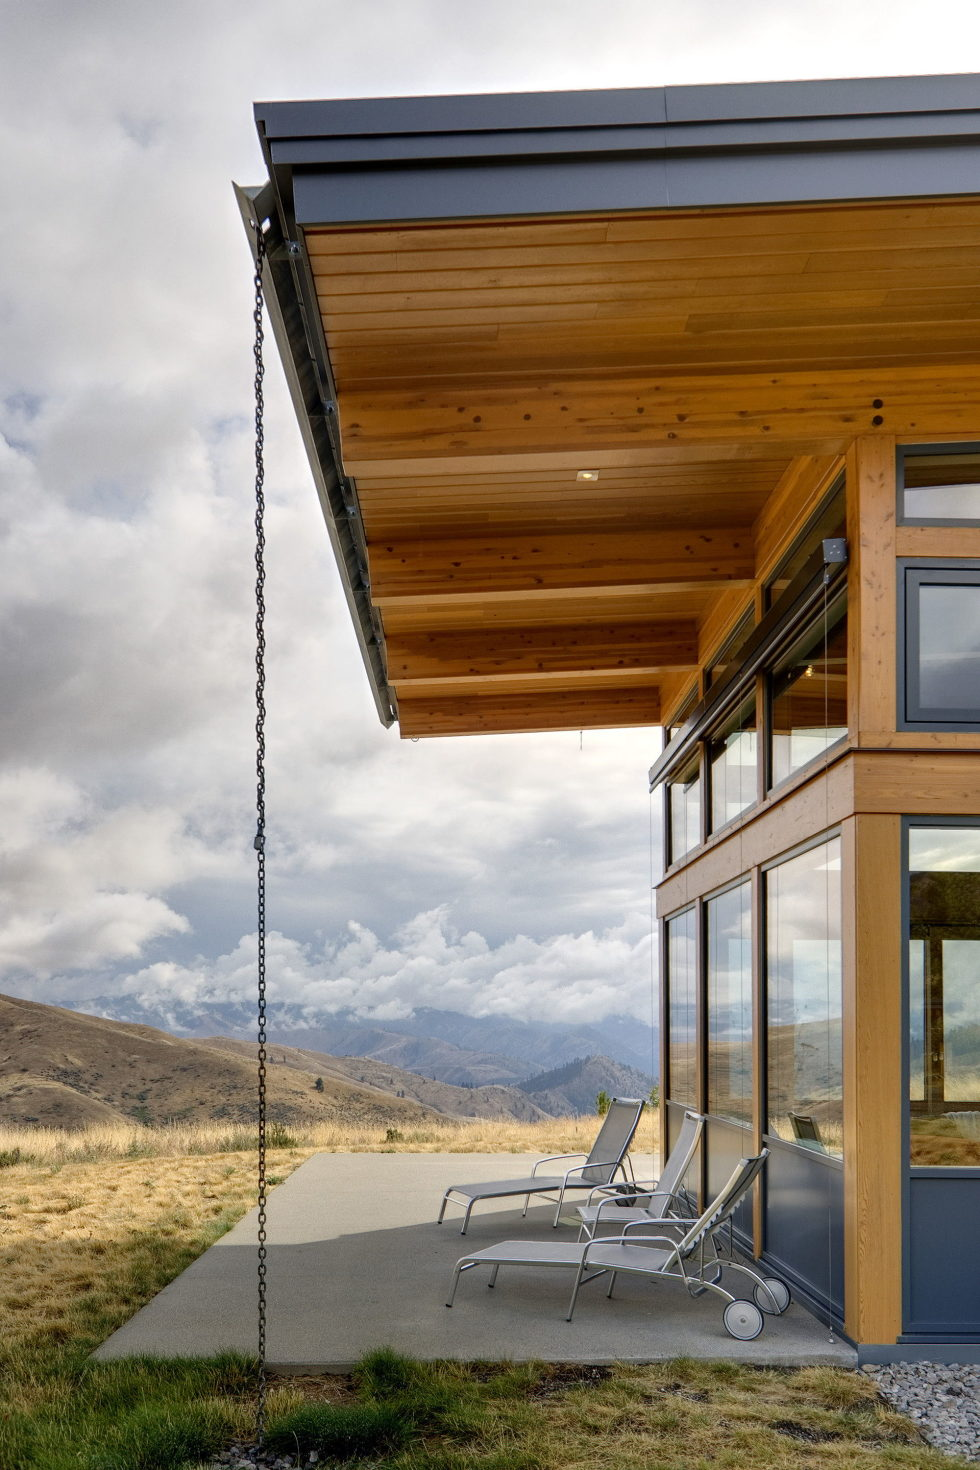 nahahum-the-cozy-house-aslope-the-hill-in-the-usa-7